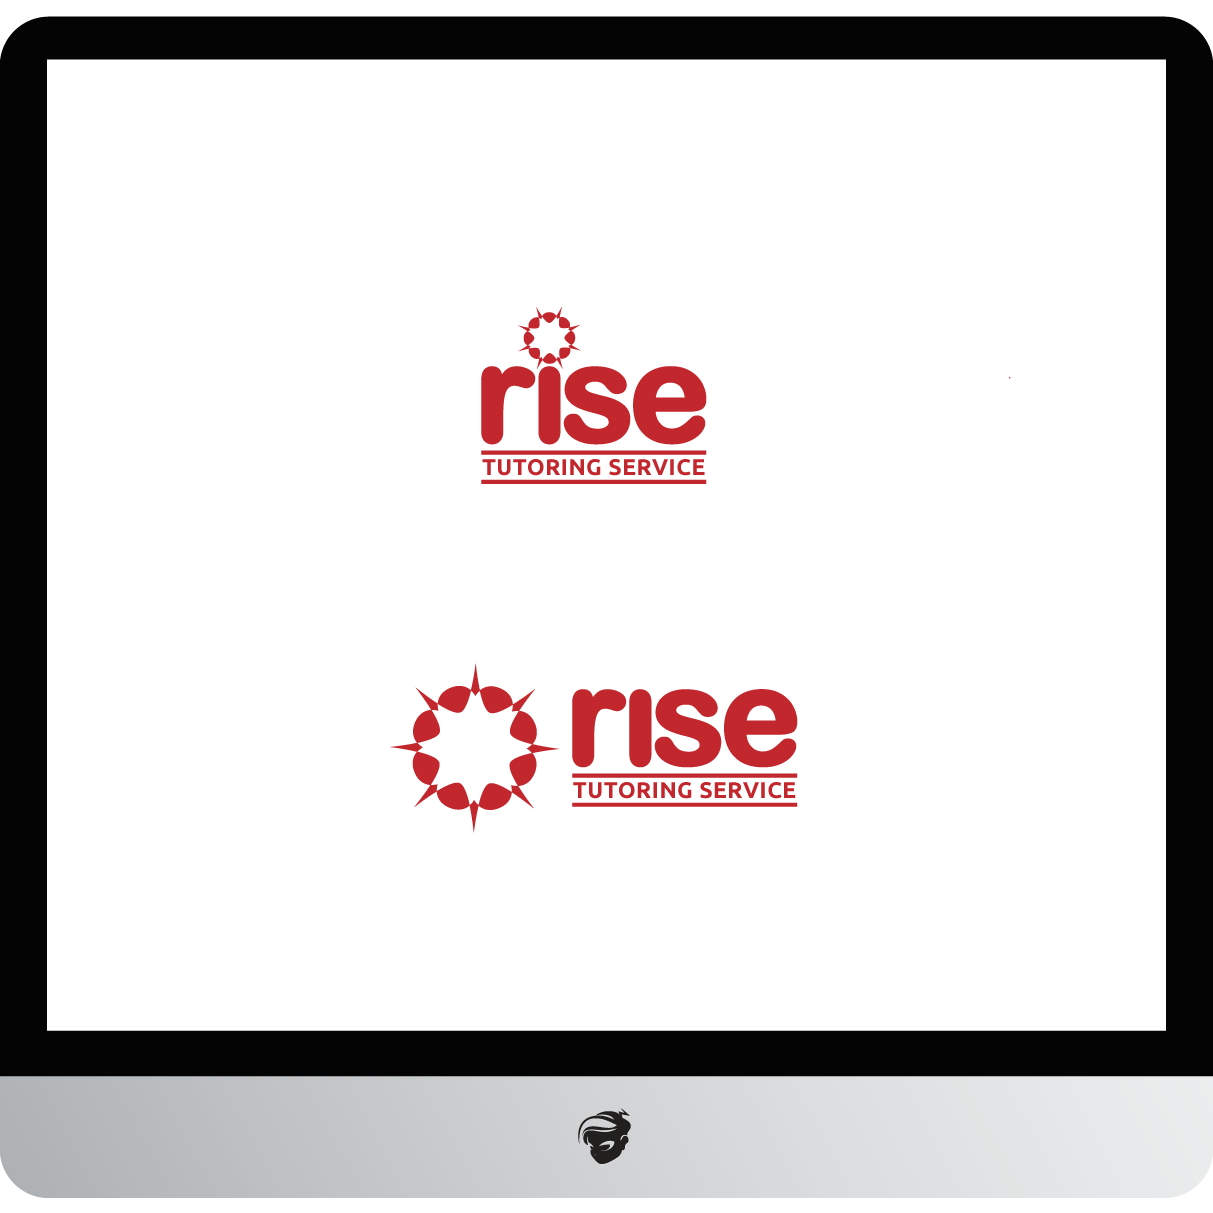 Logo Design by zesthar - Entry No. 234 in the Logo Design Contest Imaginative Logo Design for Rise Tutoring Service.